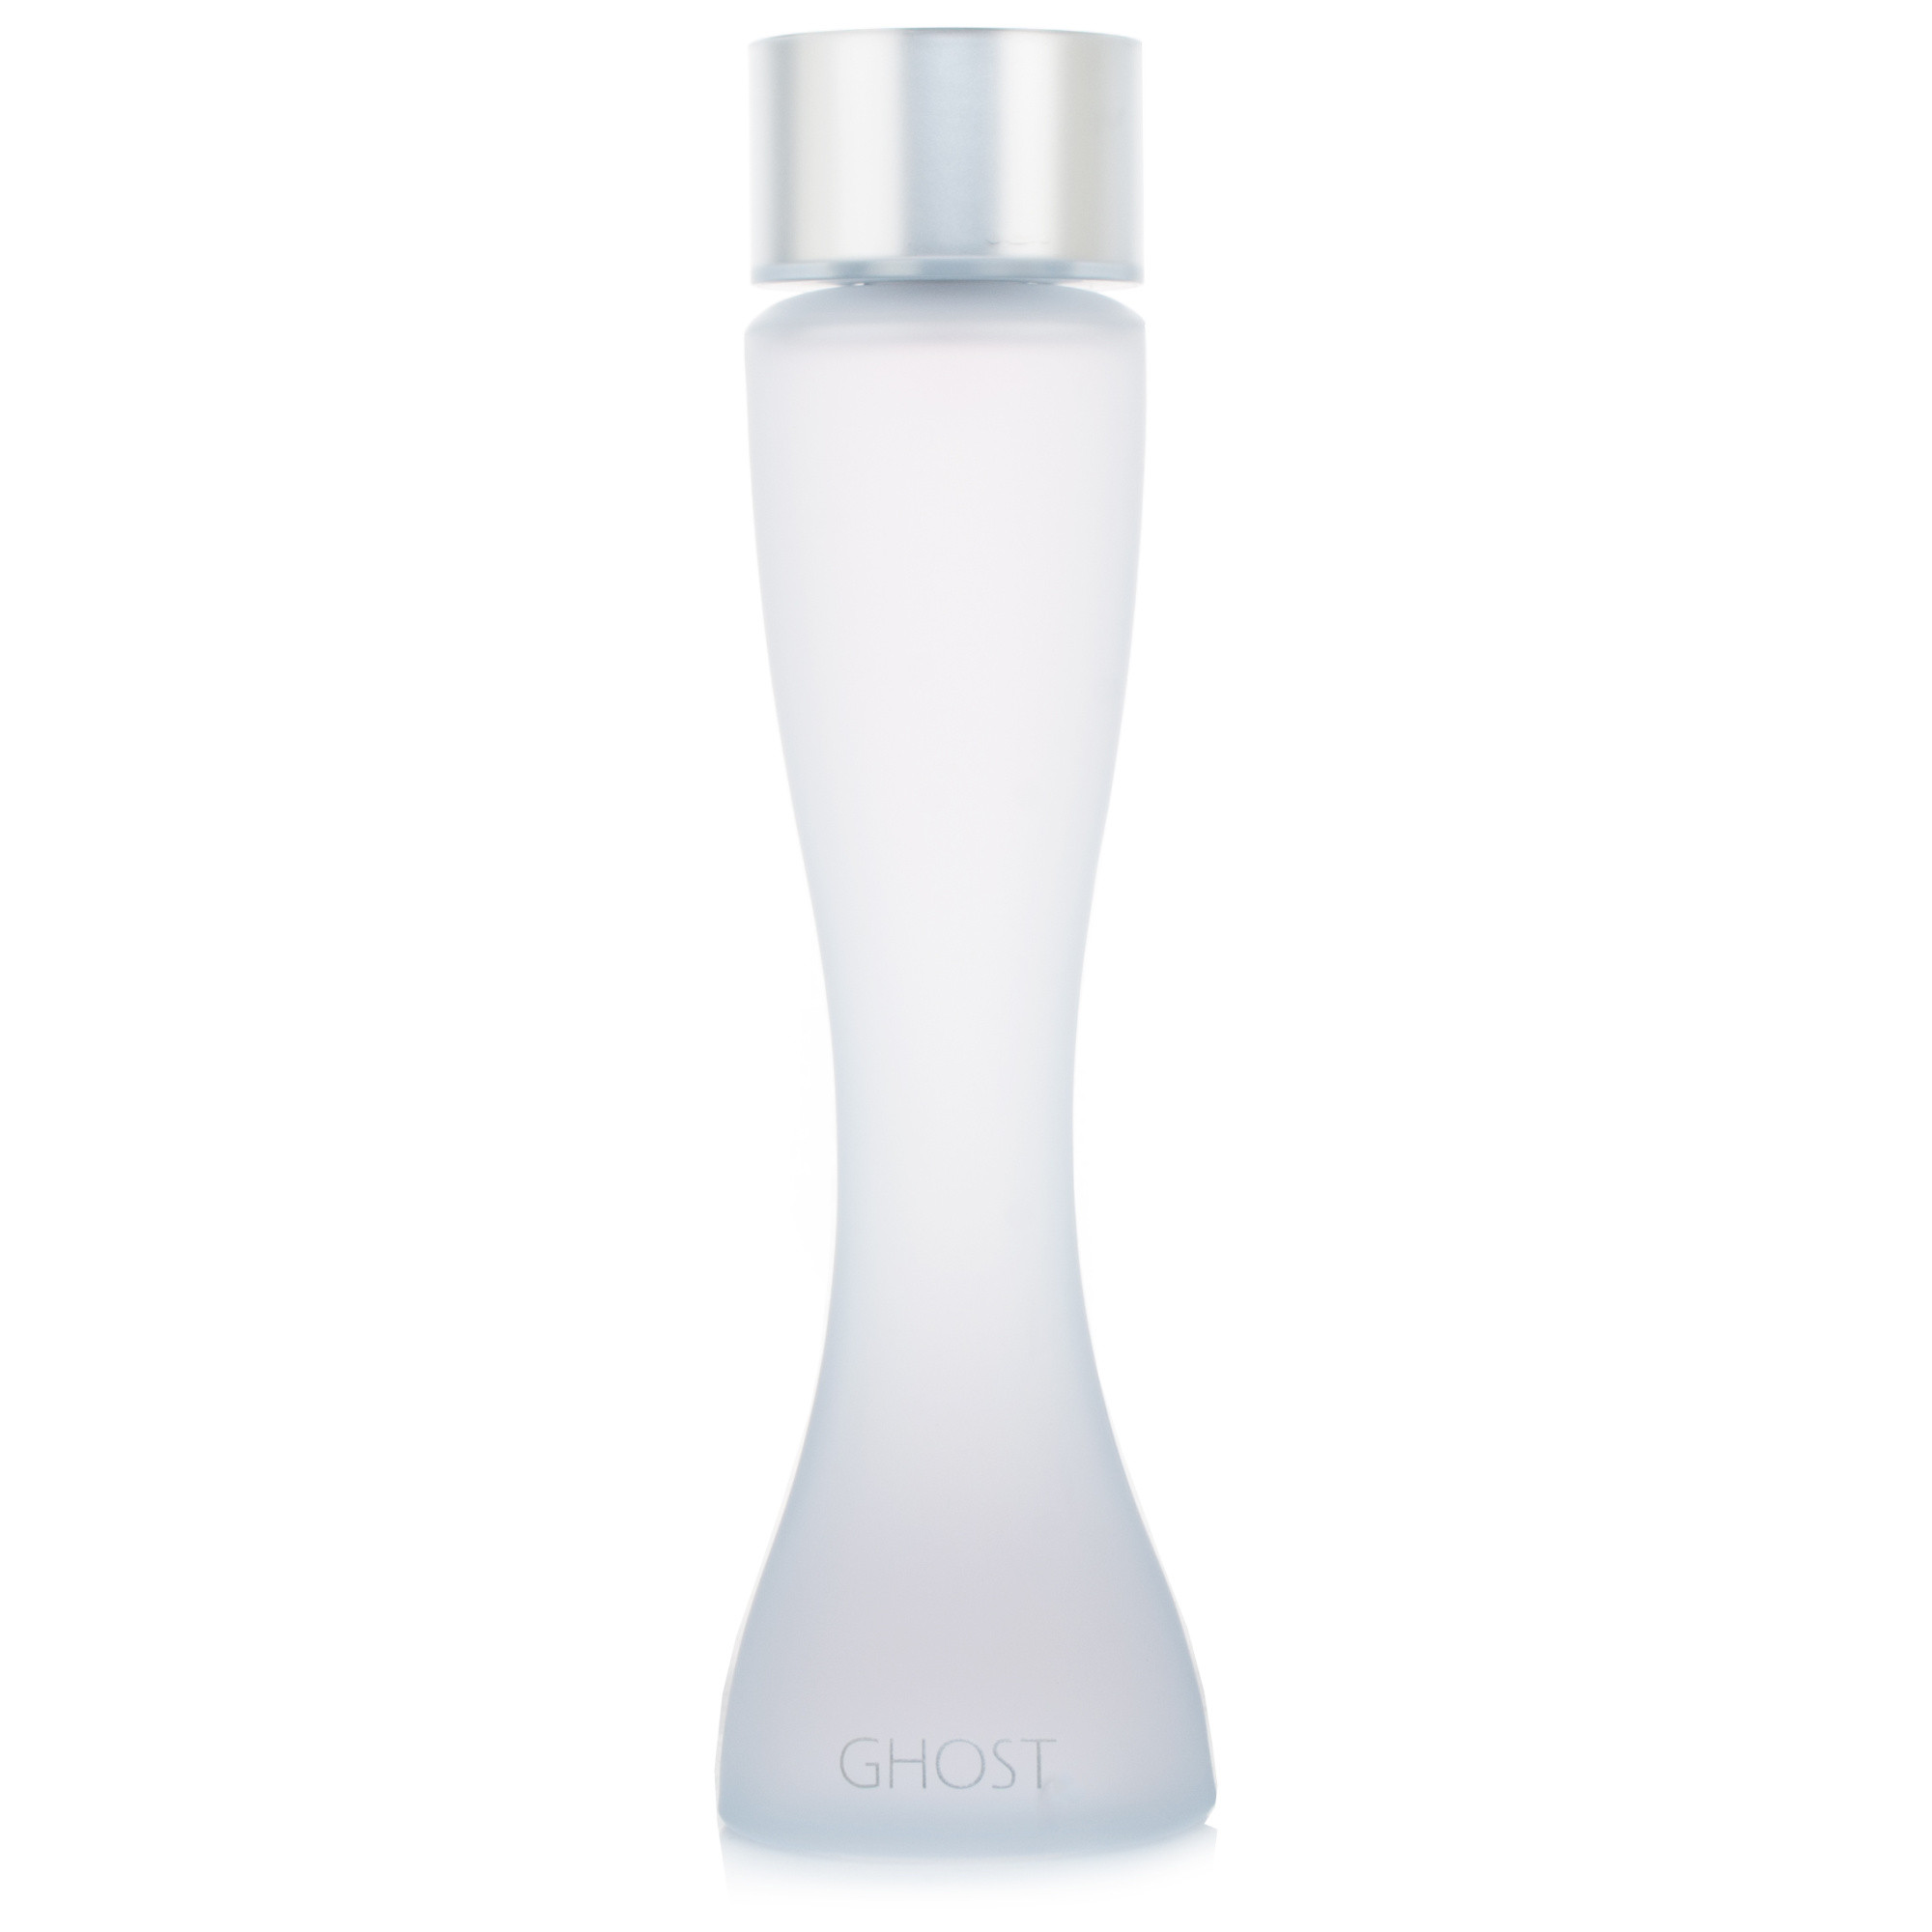 Ghost Eau de Toilette Spray